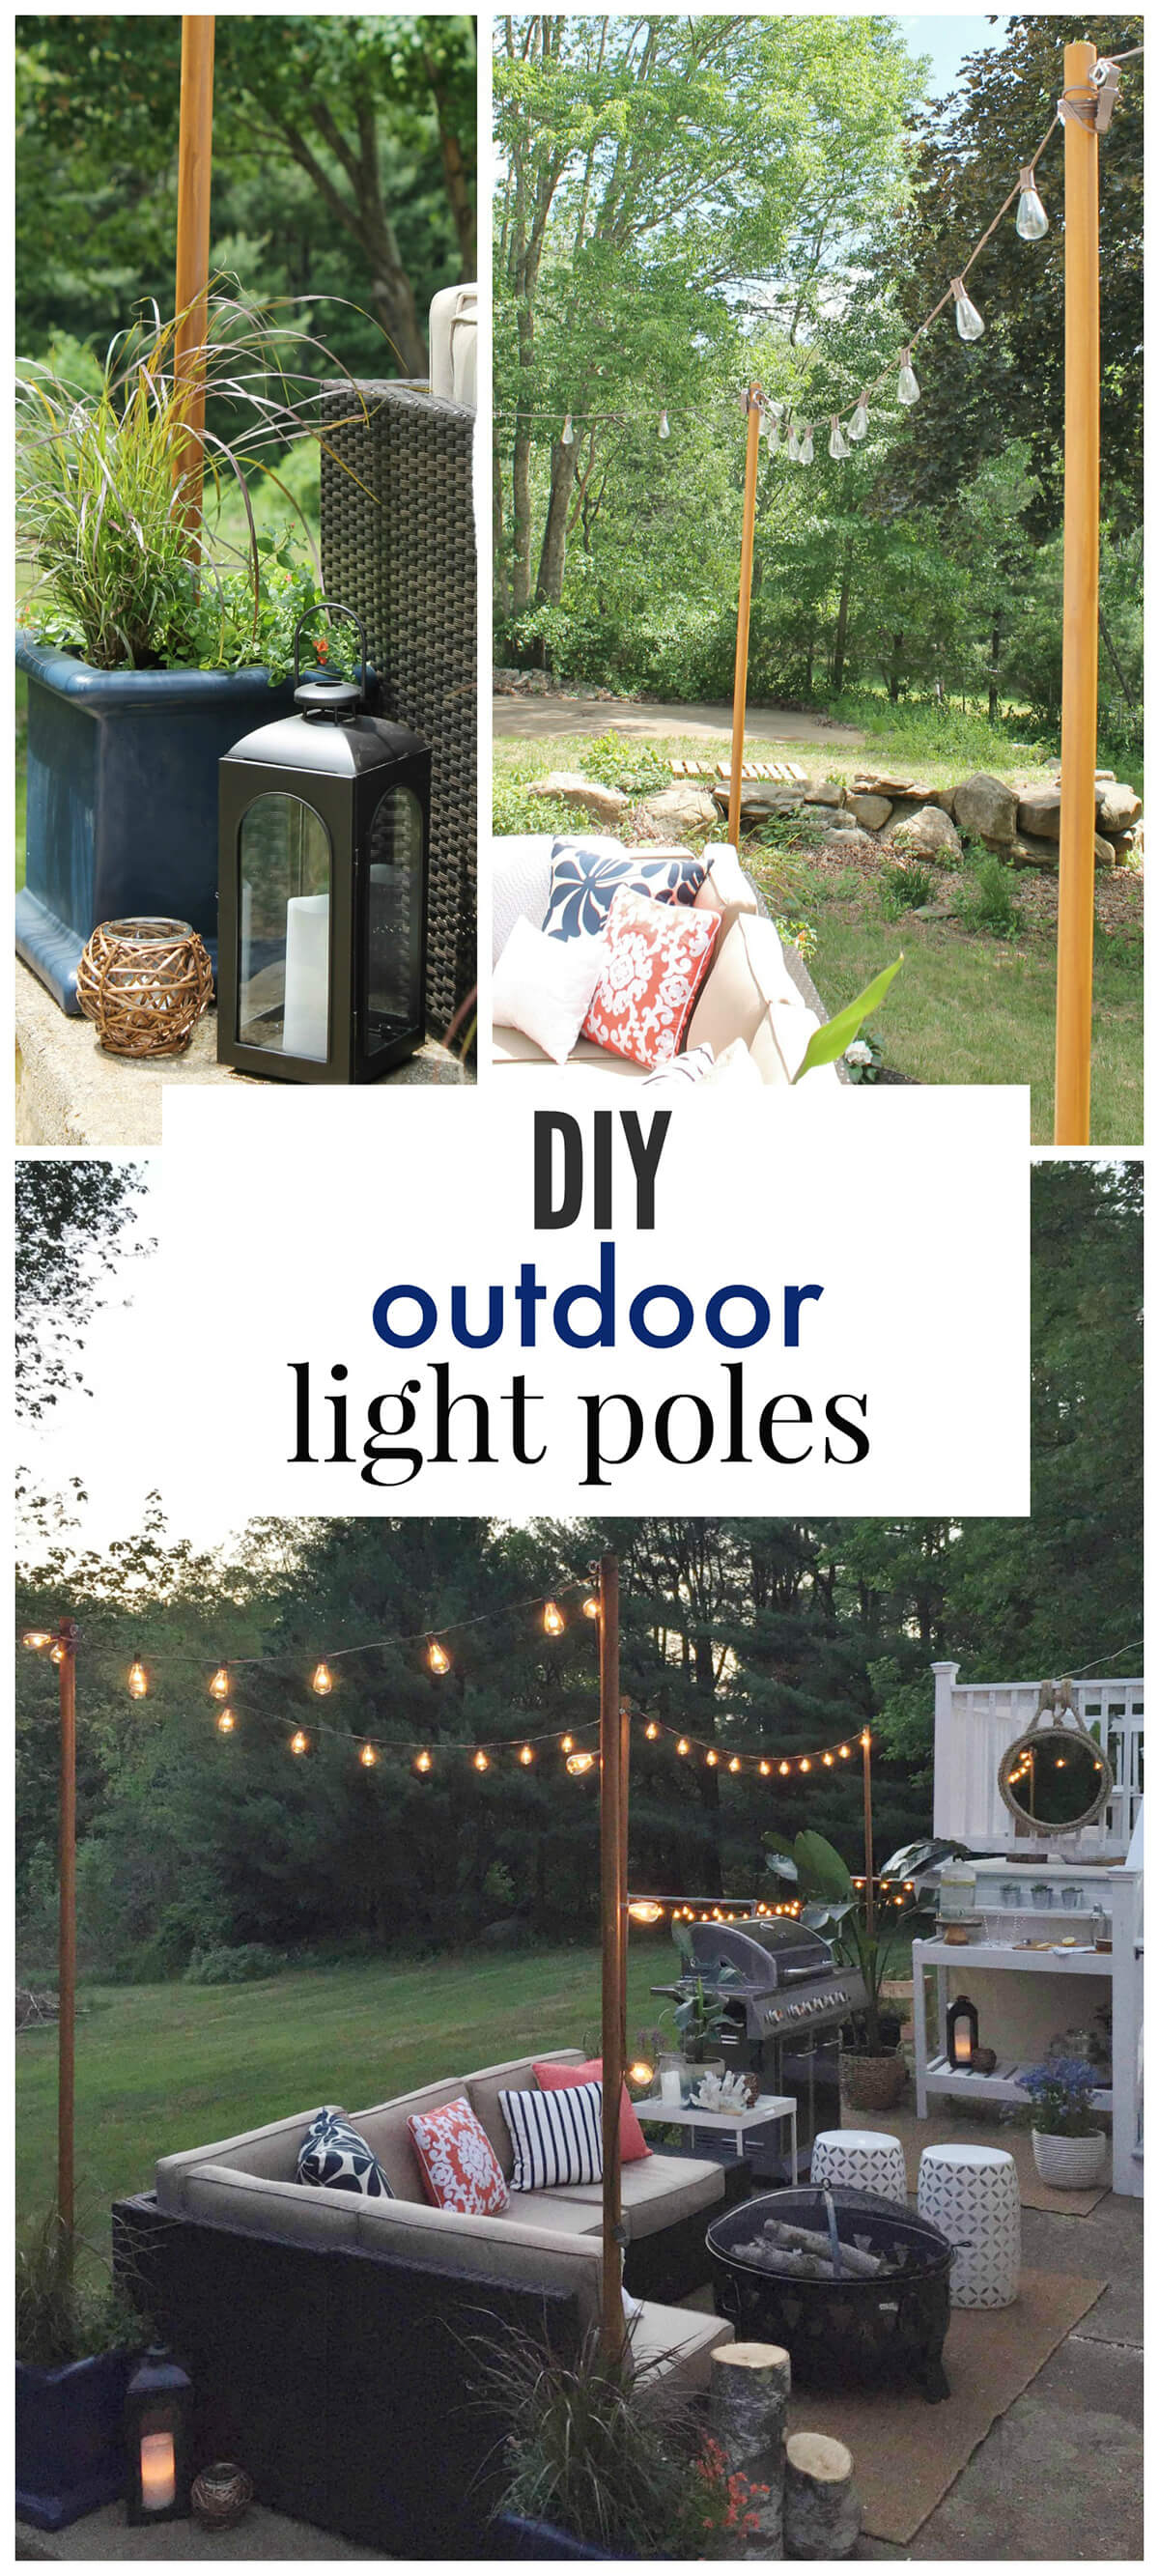 25 Best DIY Outdoor Lighting Ideas and Designs for 2020 on Backyard String Light Designs id=85781